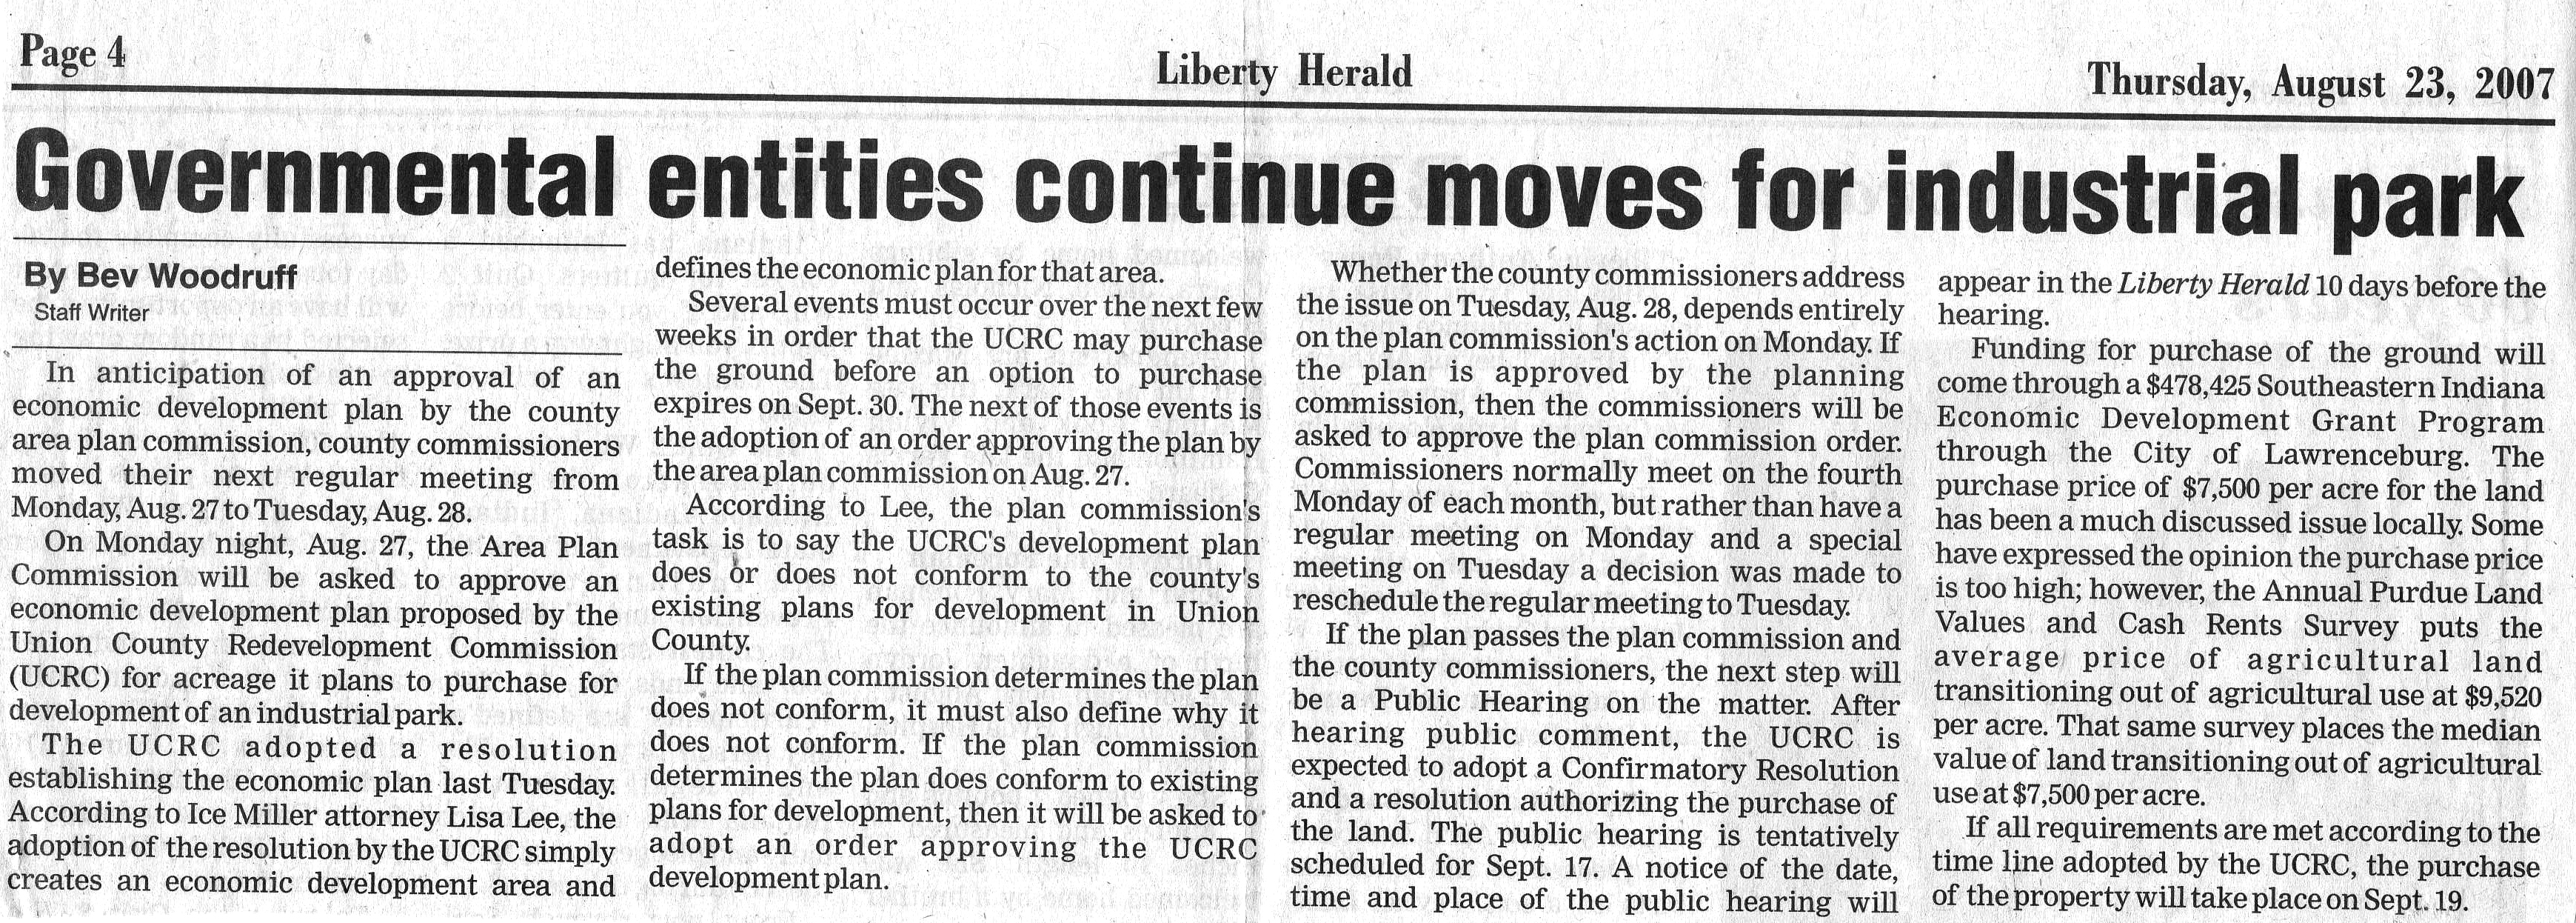 Governmental Entities Continue Moves For Industrial Park - Liberty Herald August 23, 2007